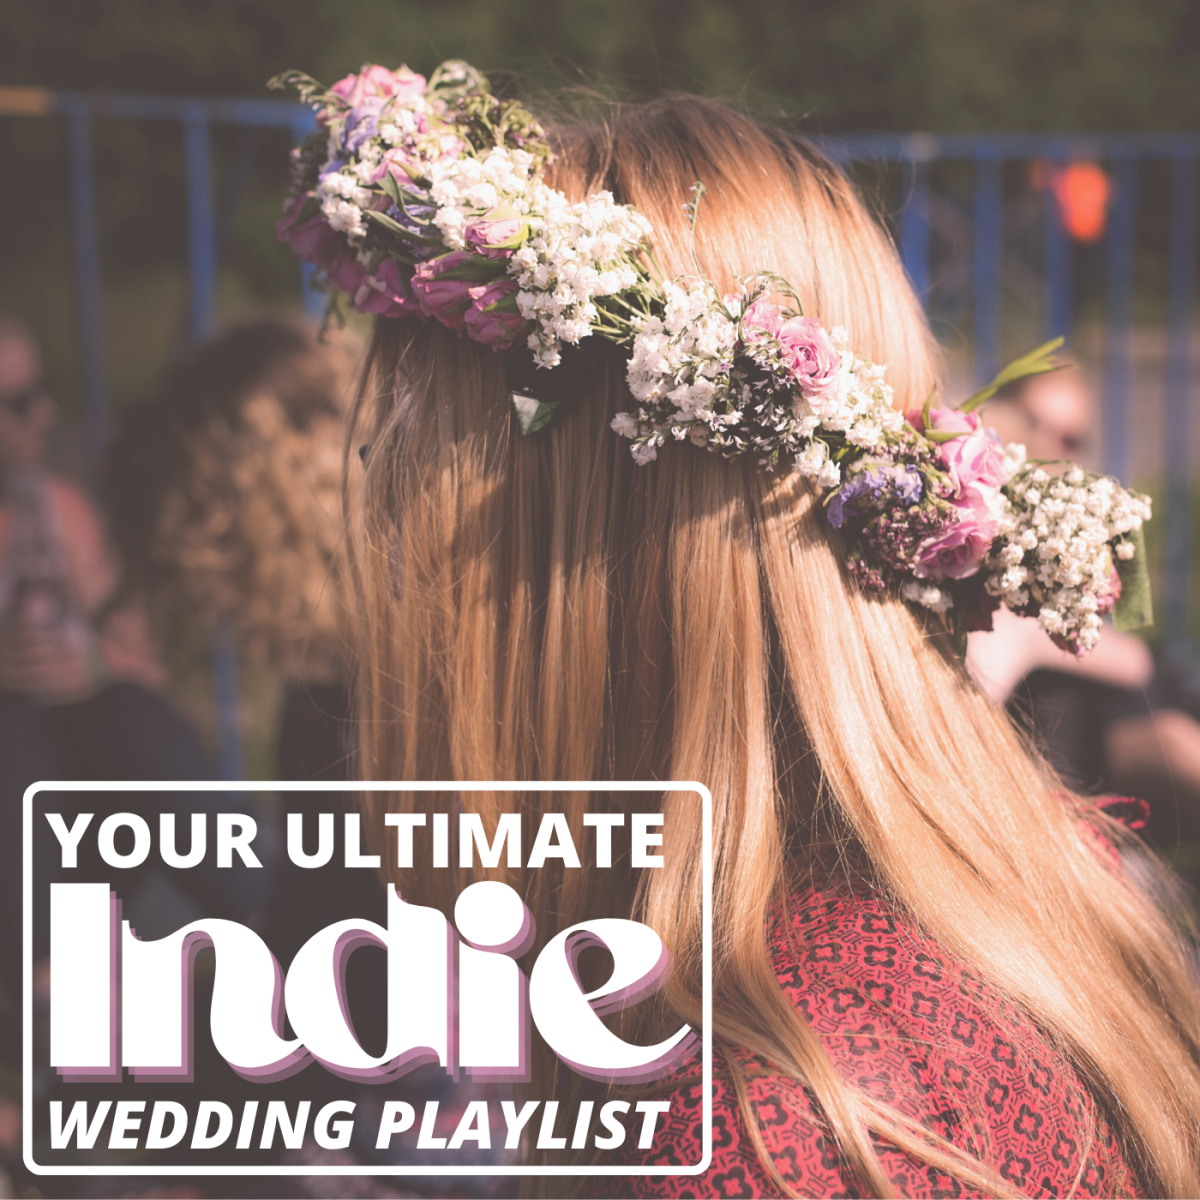 Keep it fun and feisty at your reception with these awesome indie tracks your friends and fam can dance the night away to.